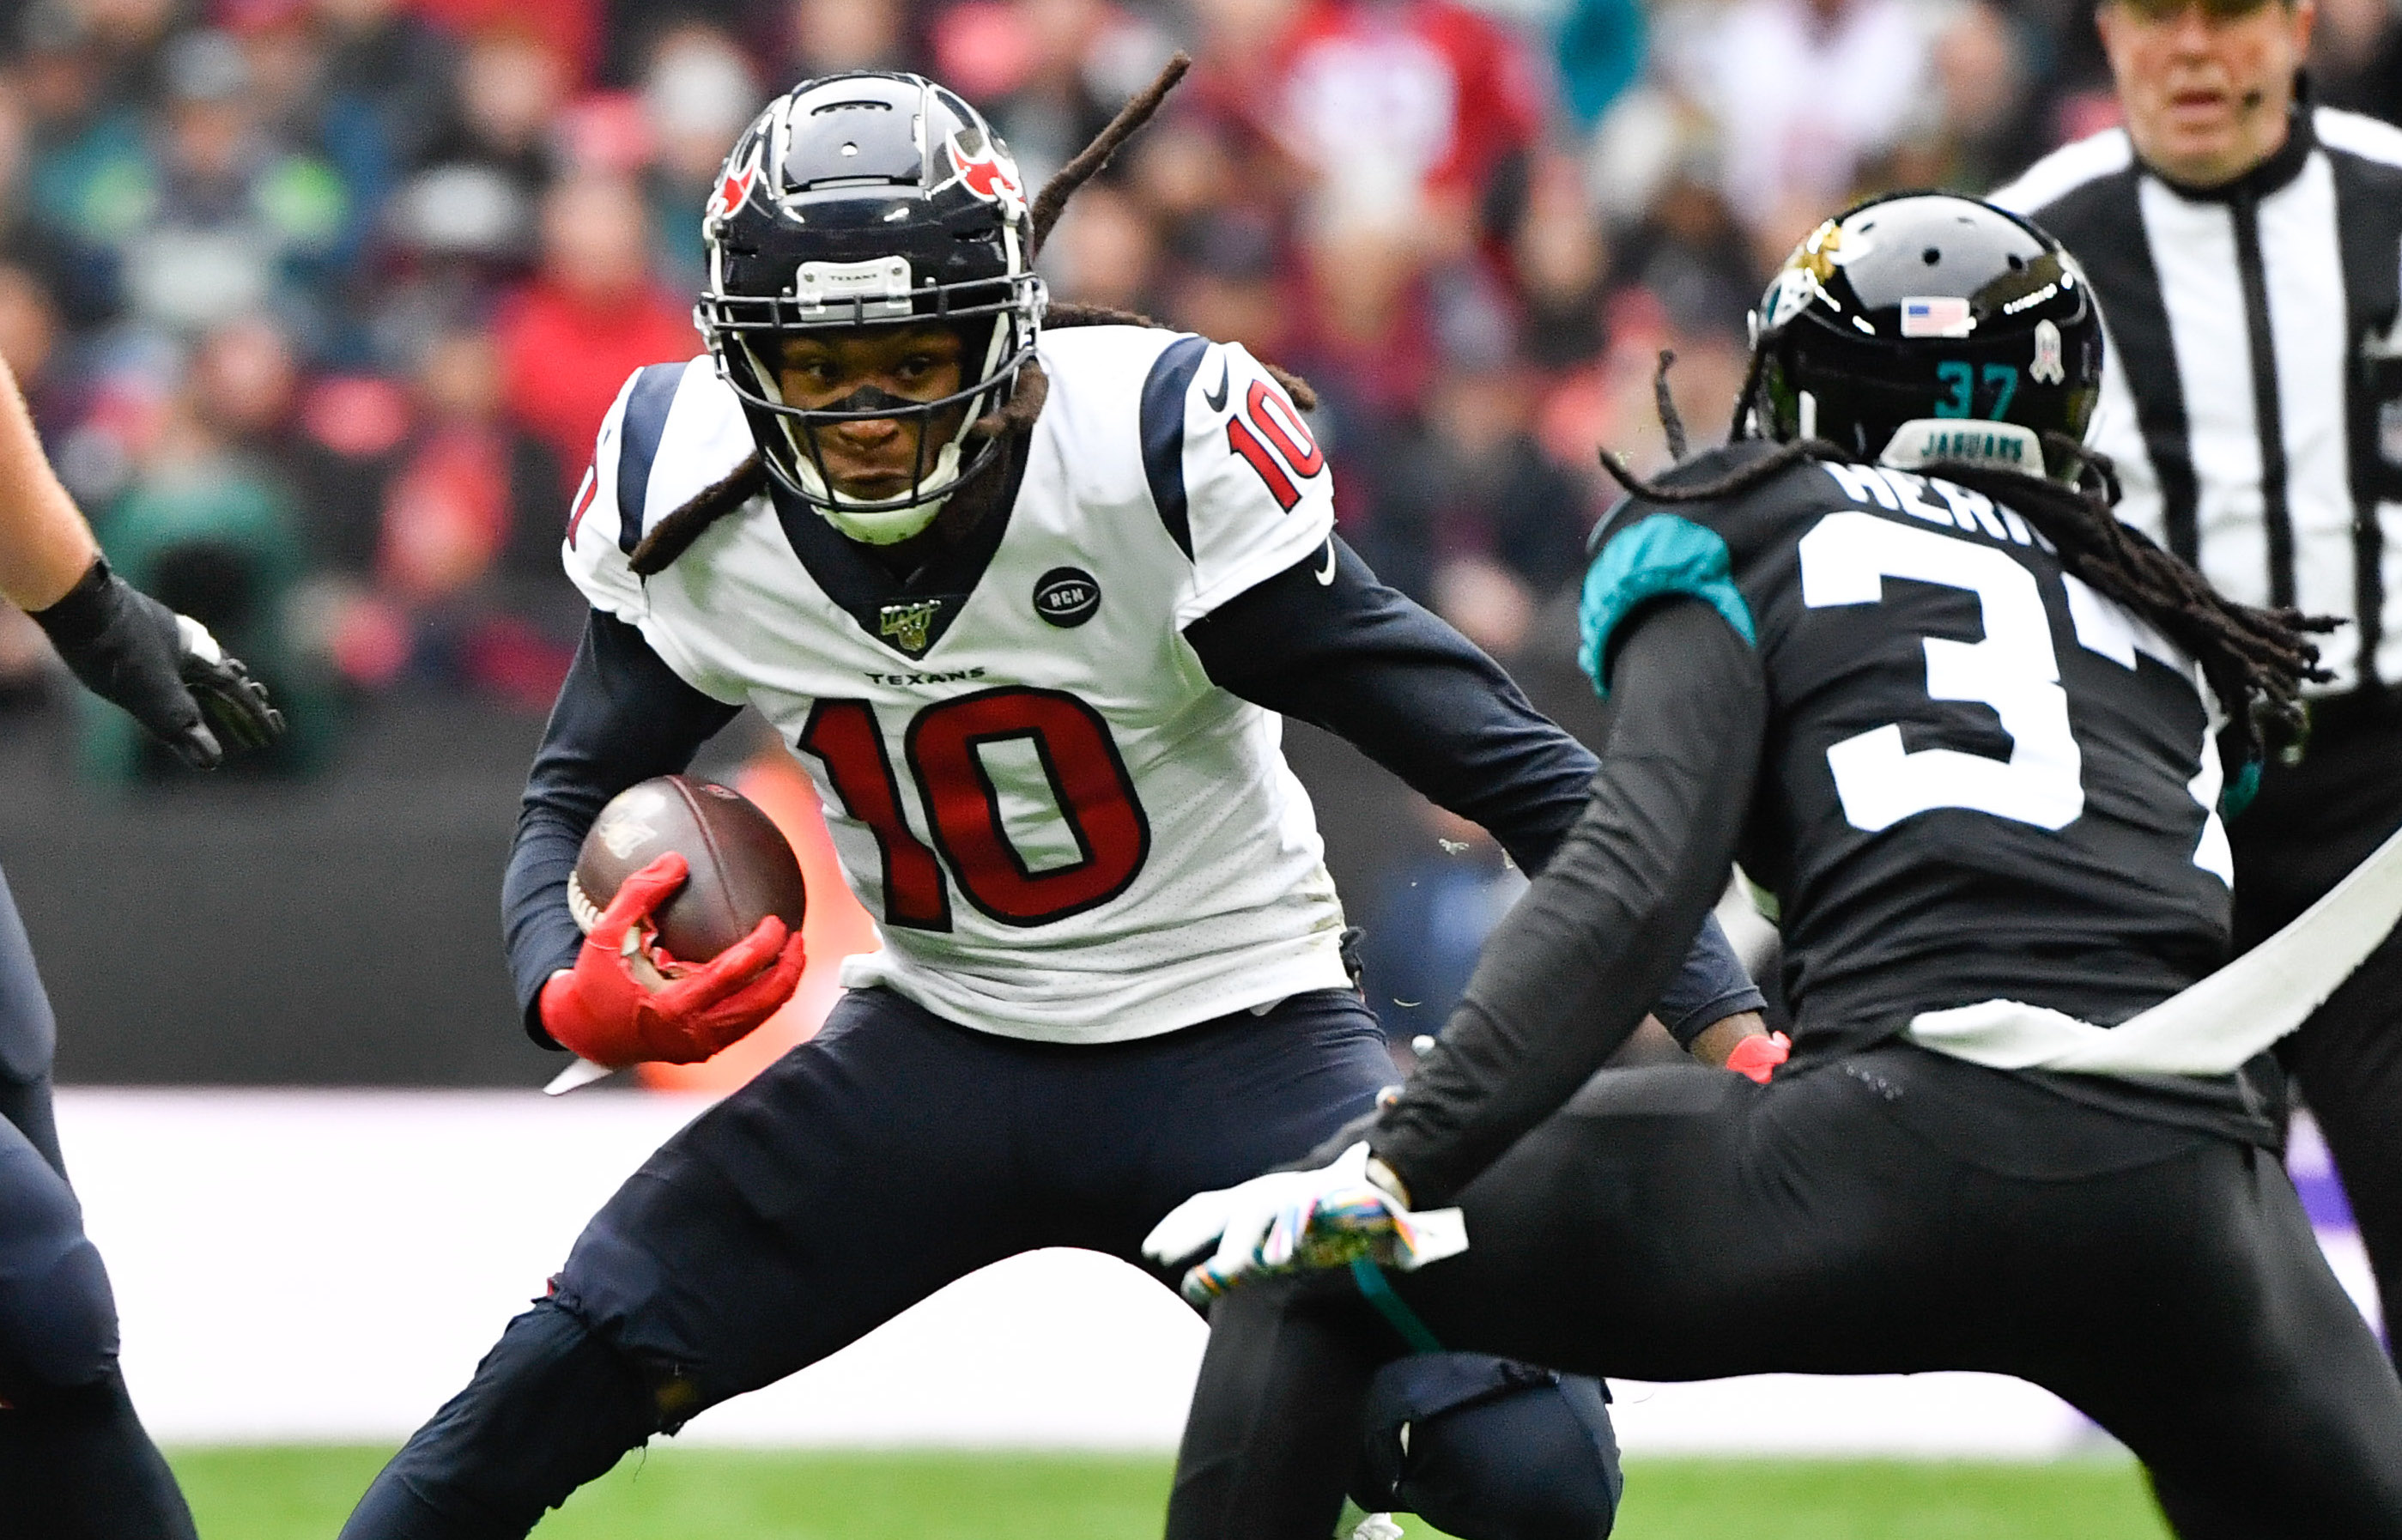 DeAndre Hopkins Appreciates the Texans Business Like Approach in Their Win Over The Jaguars